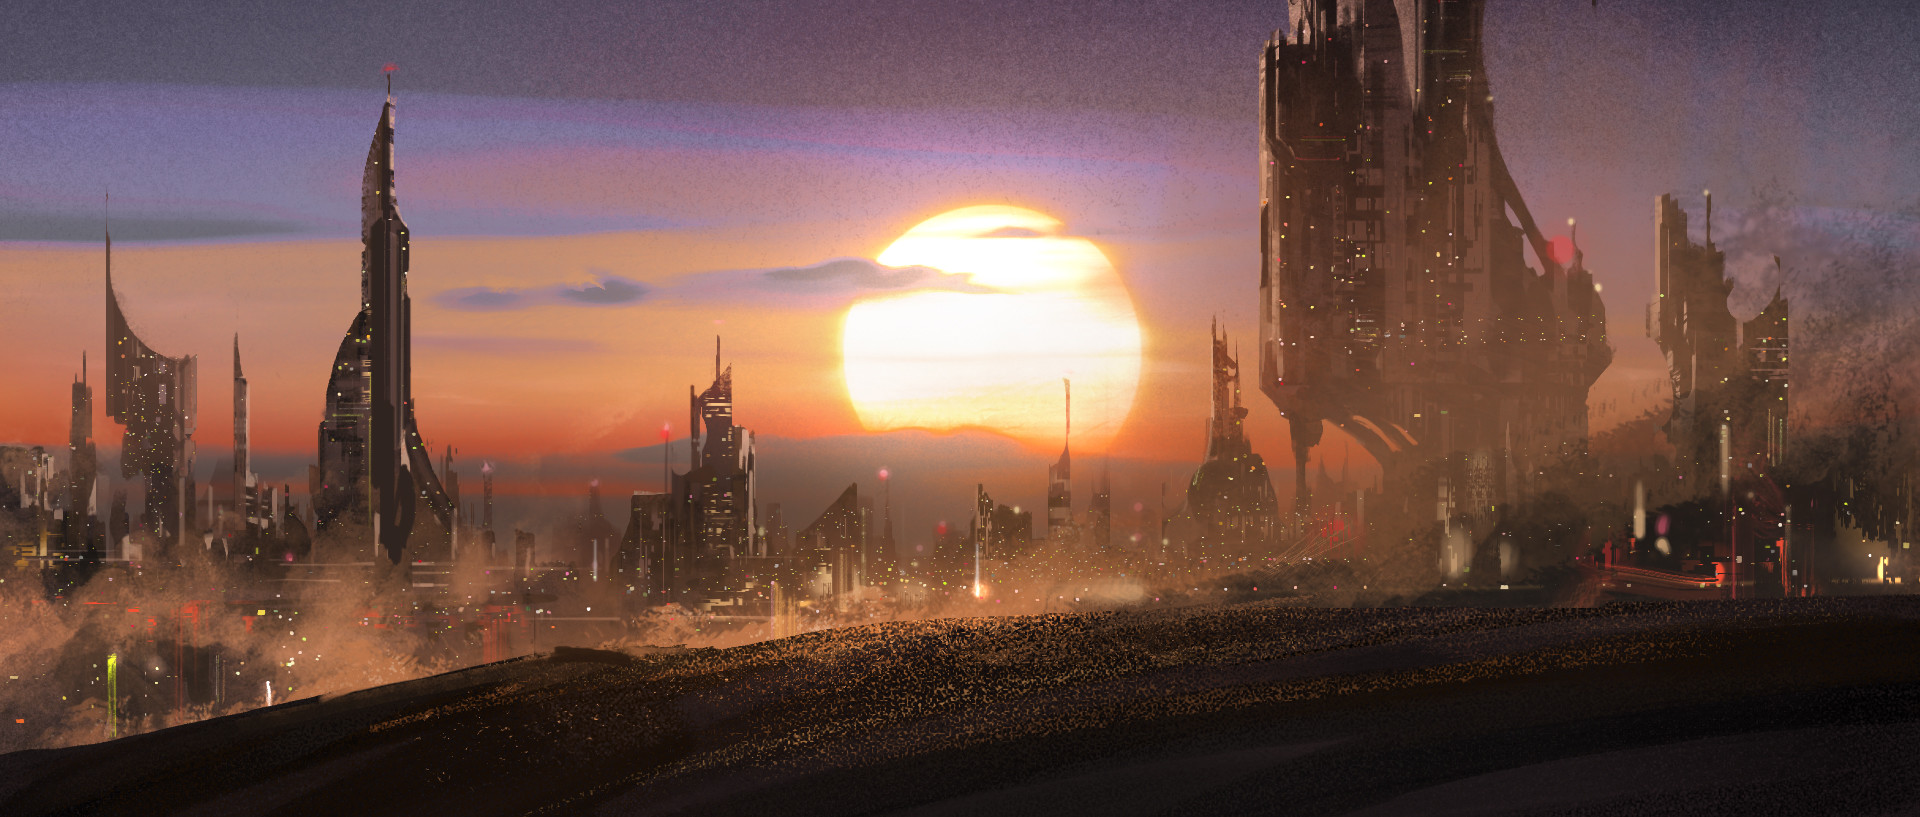 Quentin mabille city sunset wip